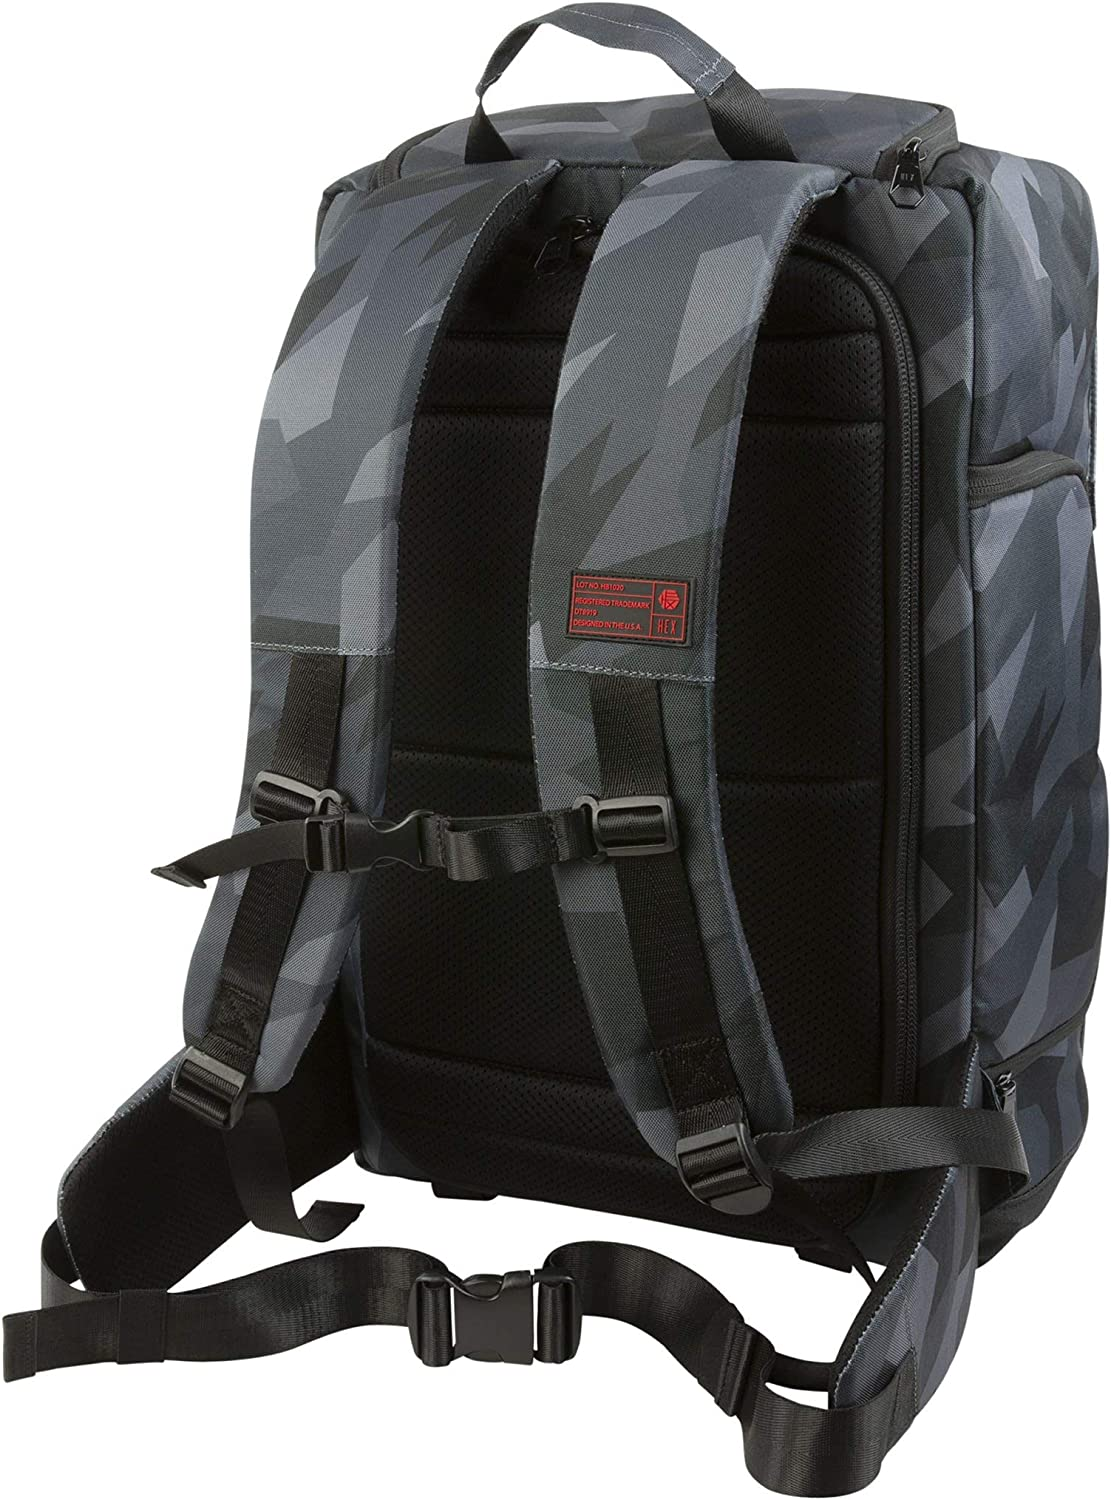 Tripod Straps Glacier Camo with Back Loading and Adjustable Interior Dividers HEX Cinema DSLR Backpack